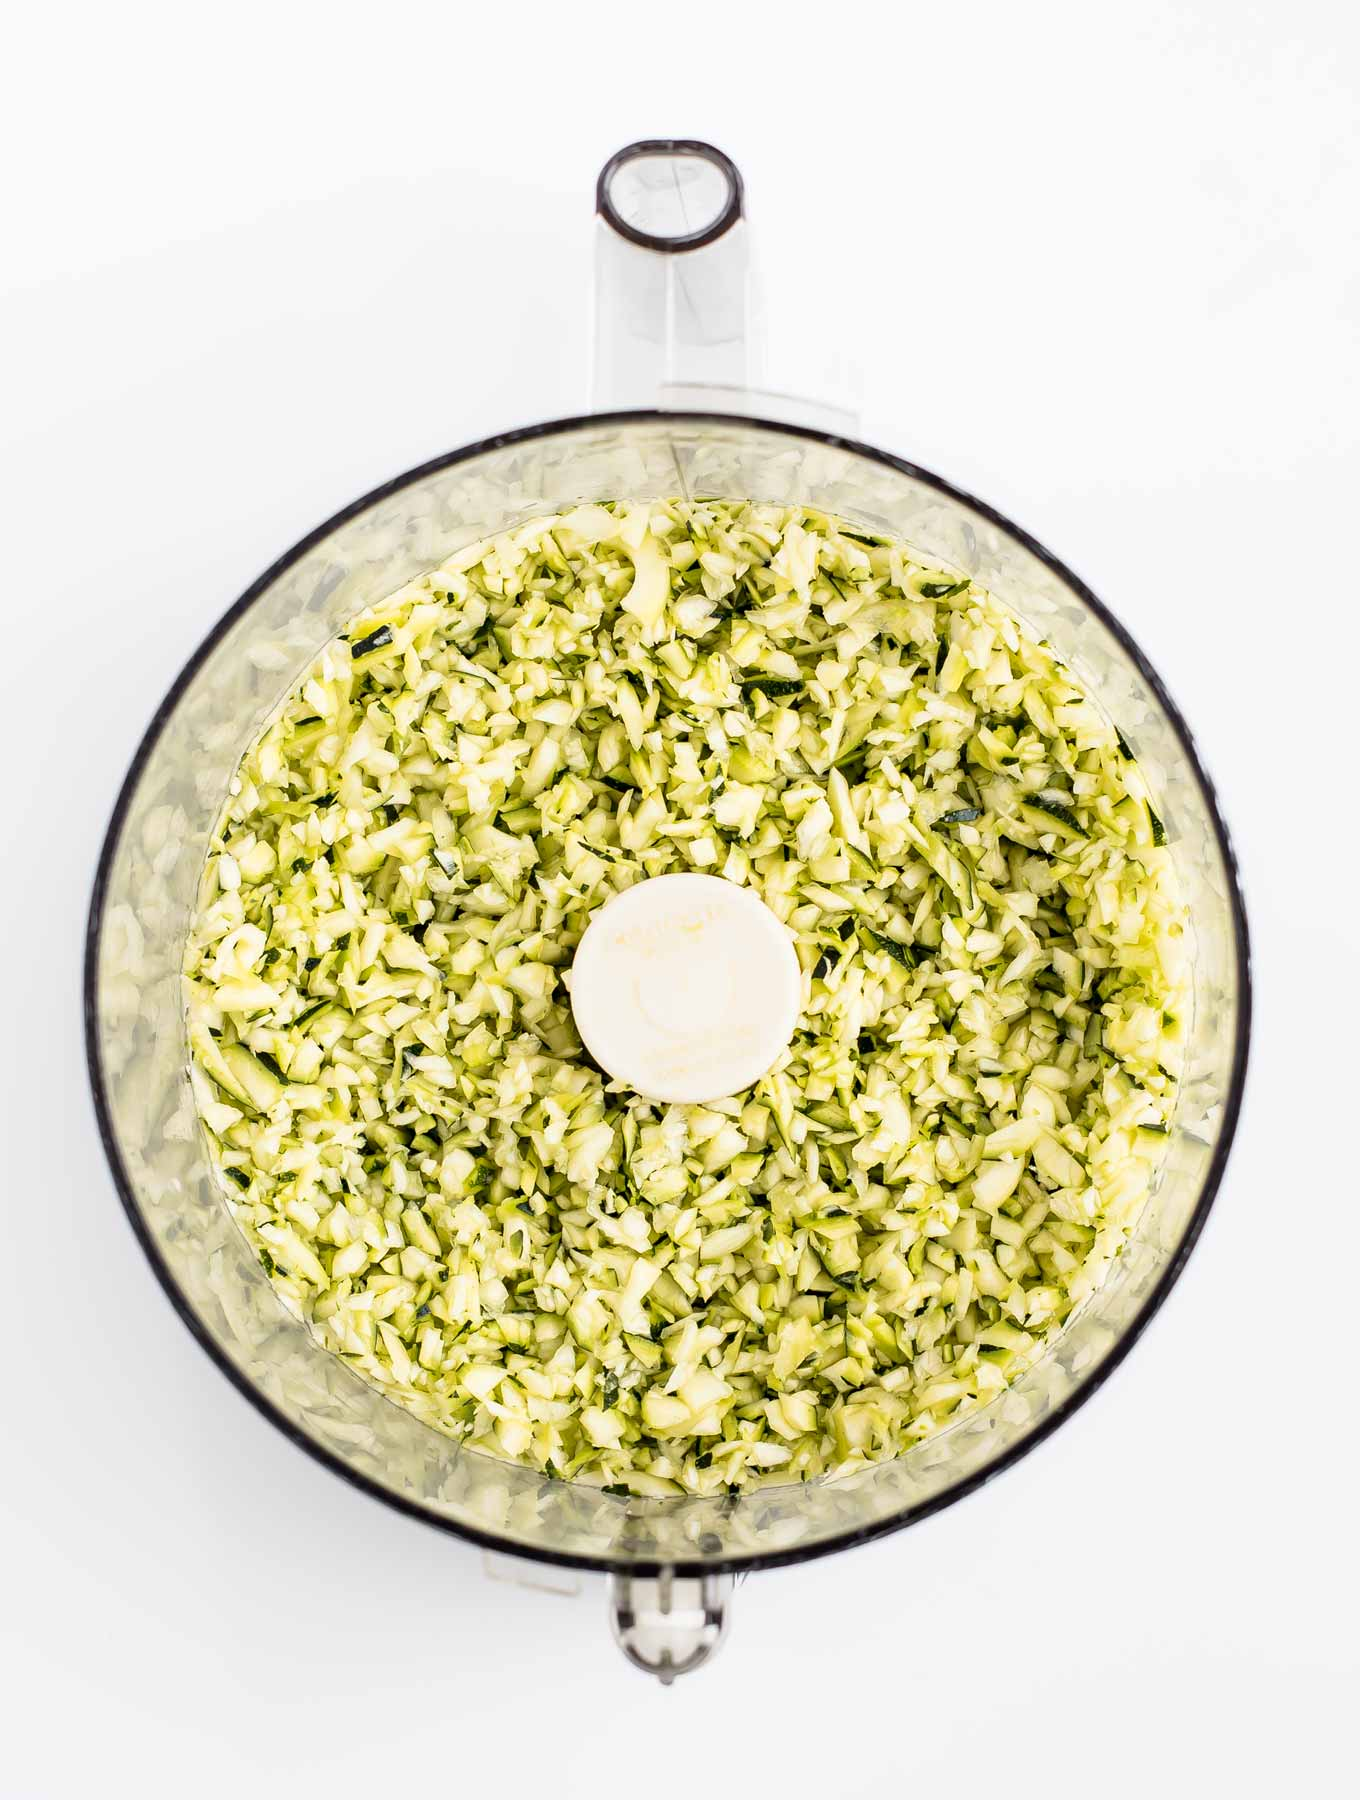 Food Processor with Riced Zucchini